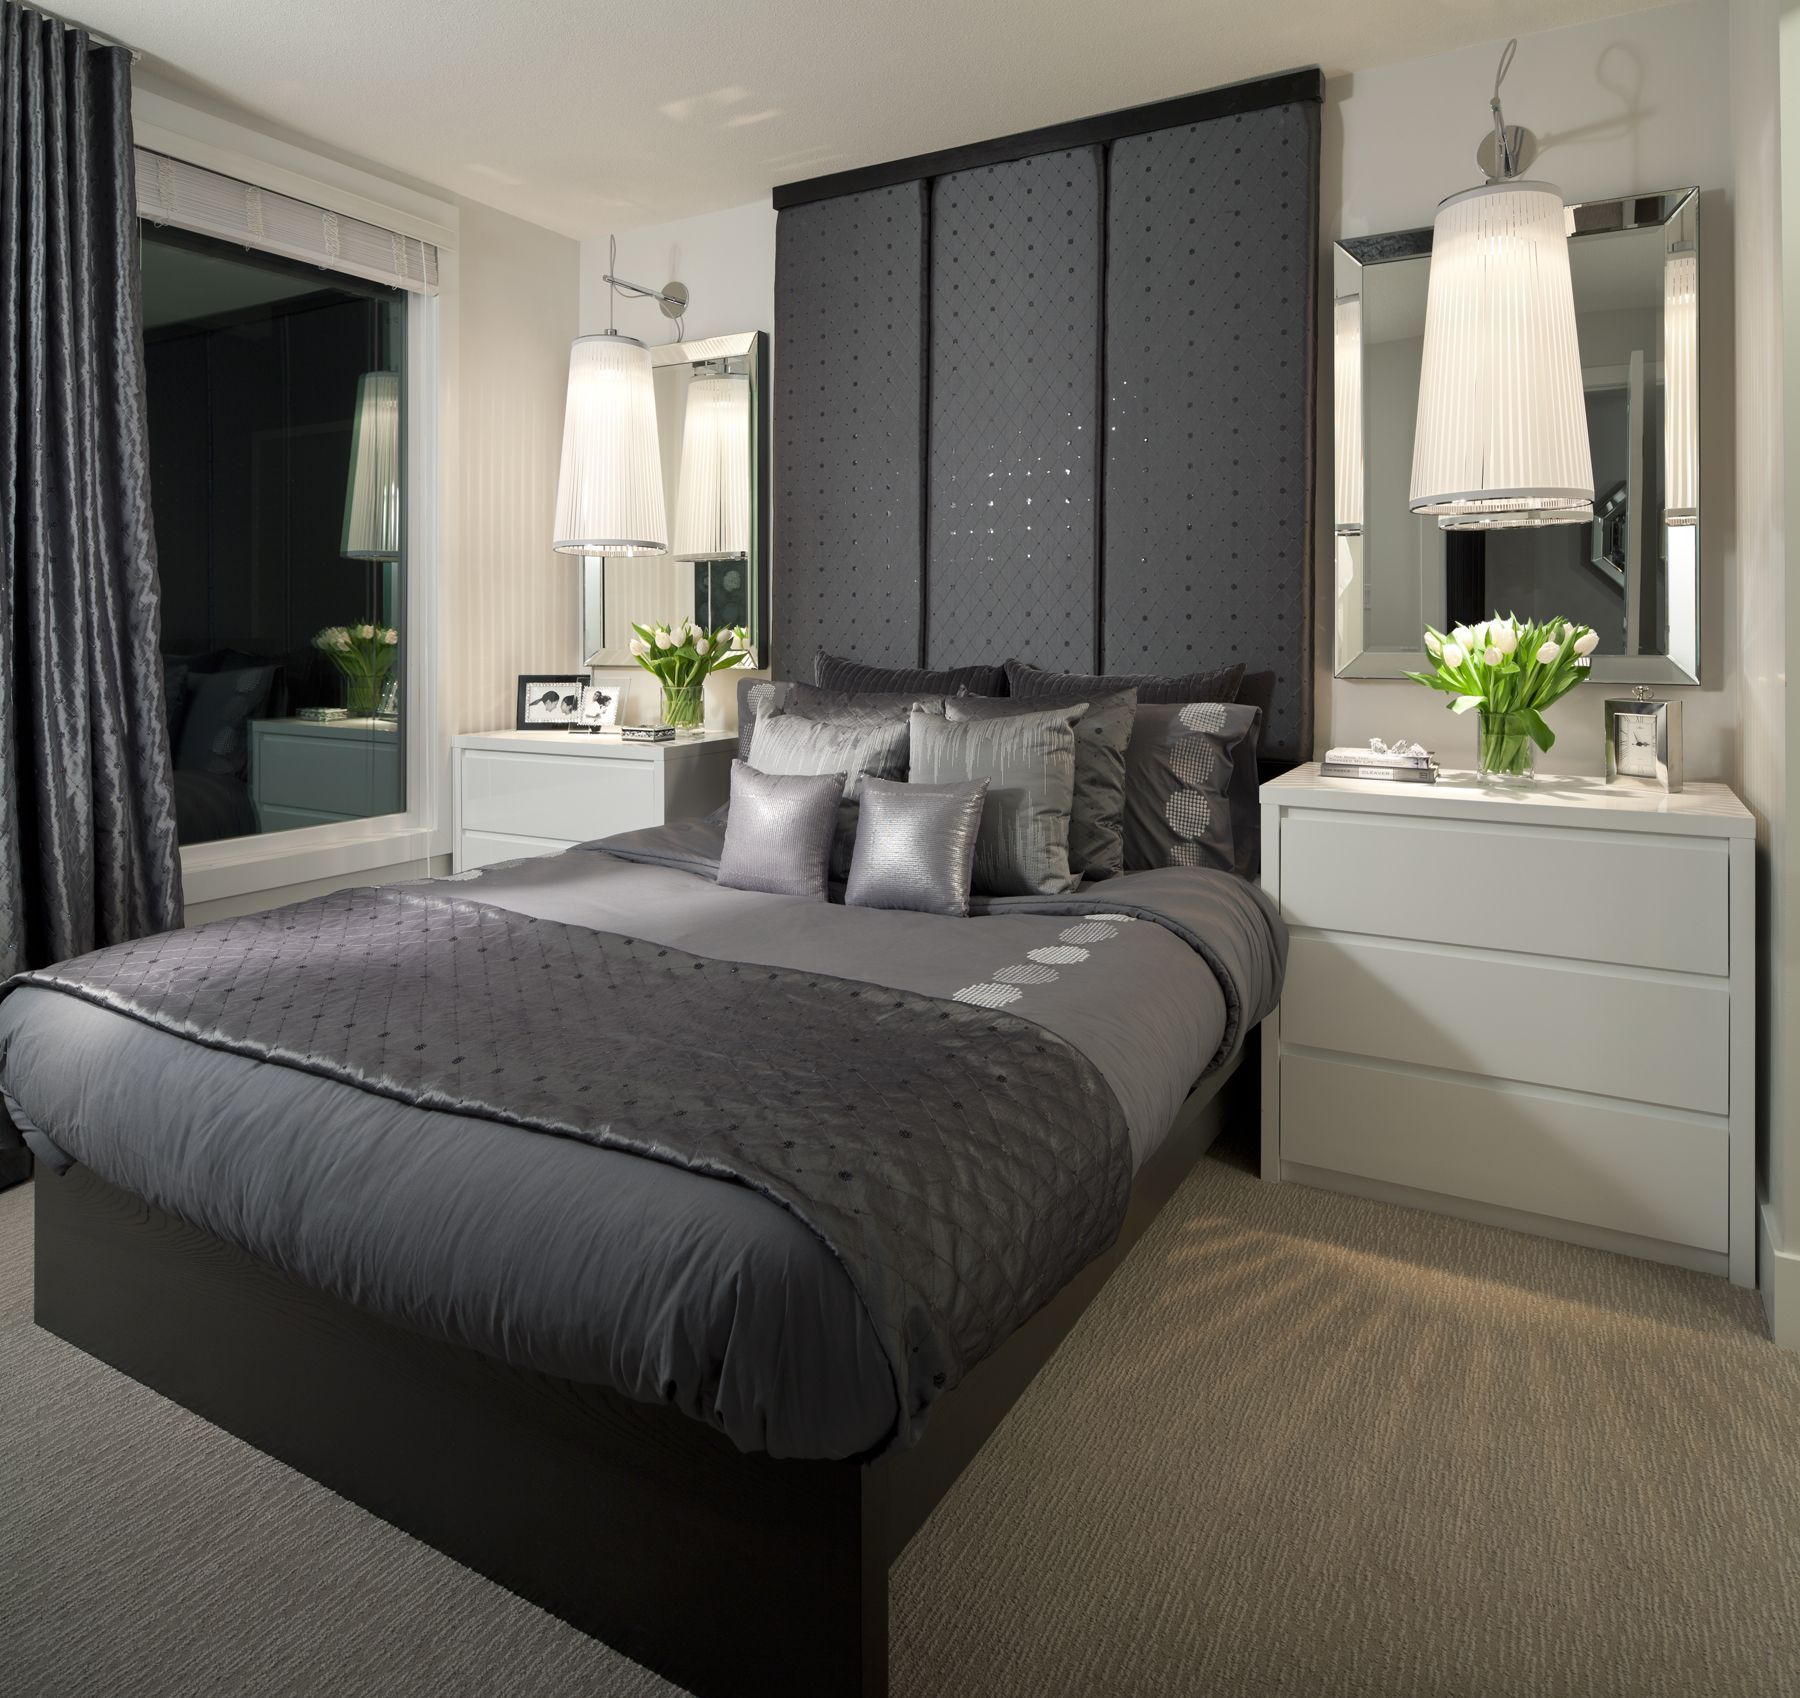 A Contemporary Bedroom With An Upholstered Headboard, Large Wall Sconces